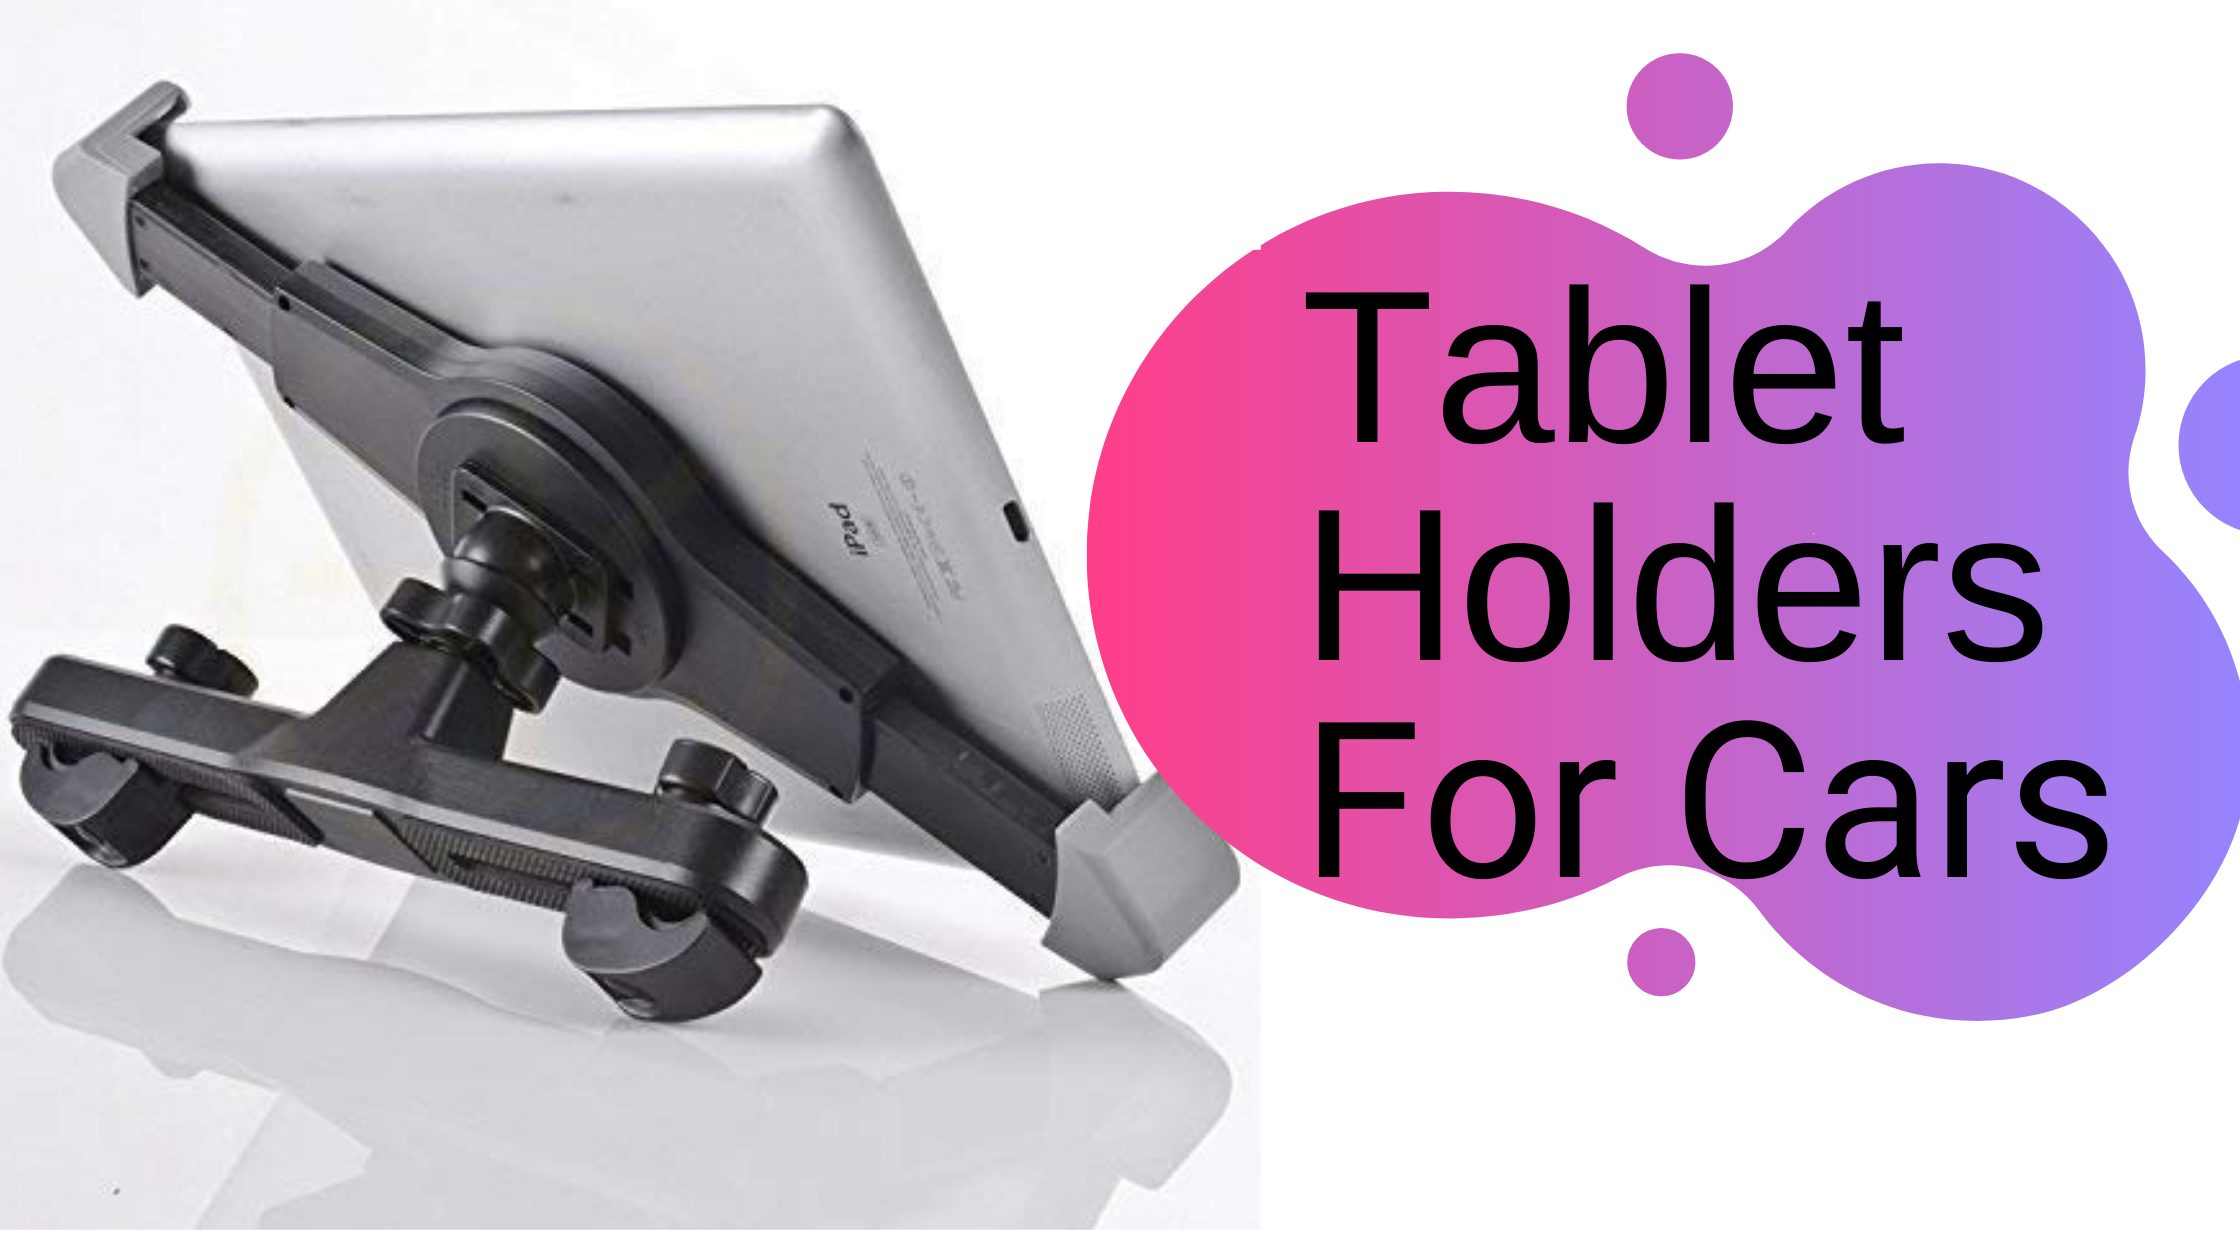 Tablet Holders For Cars